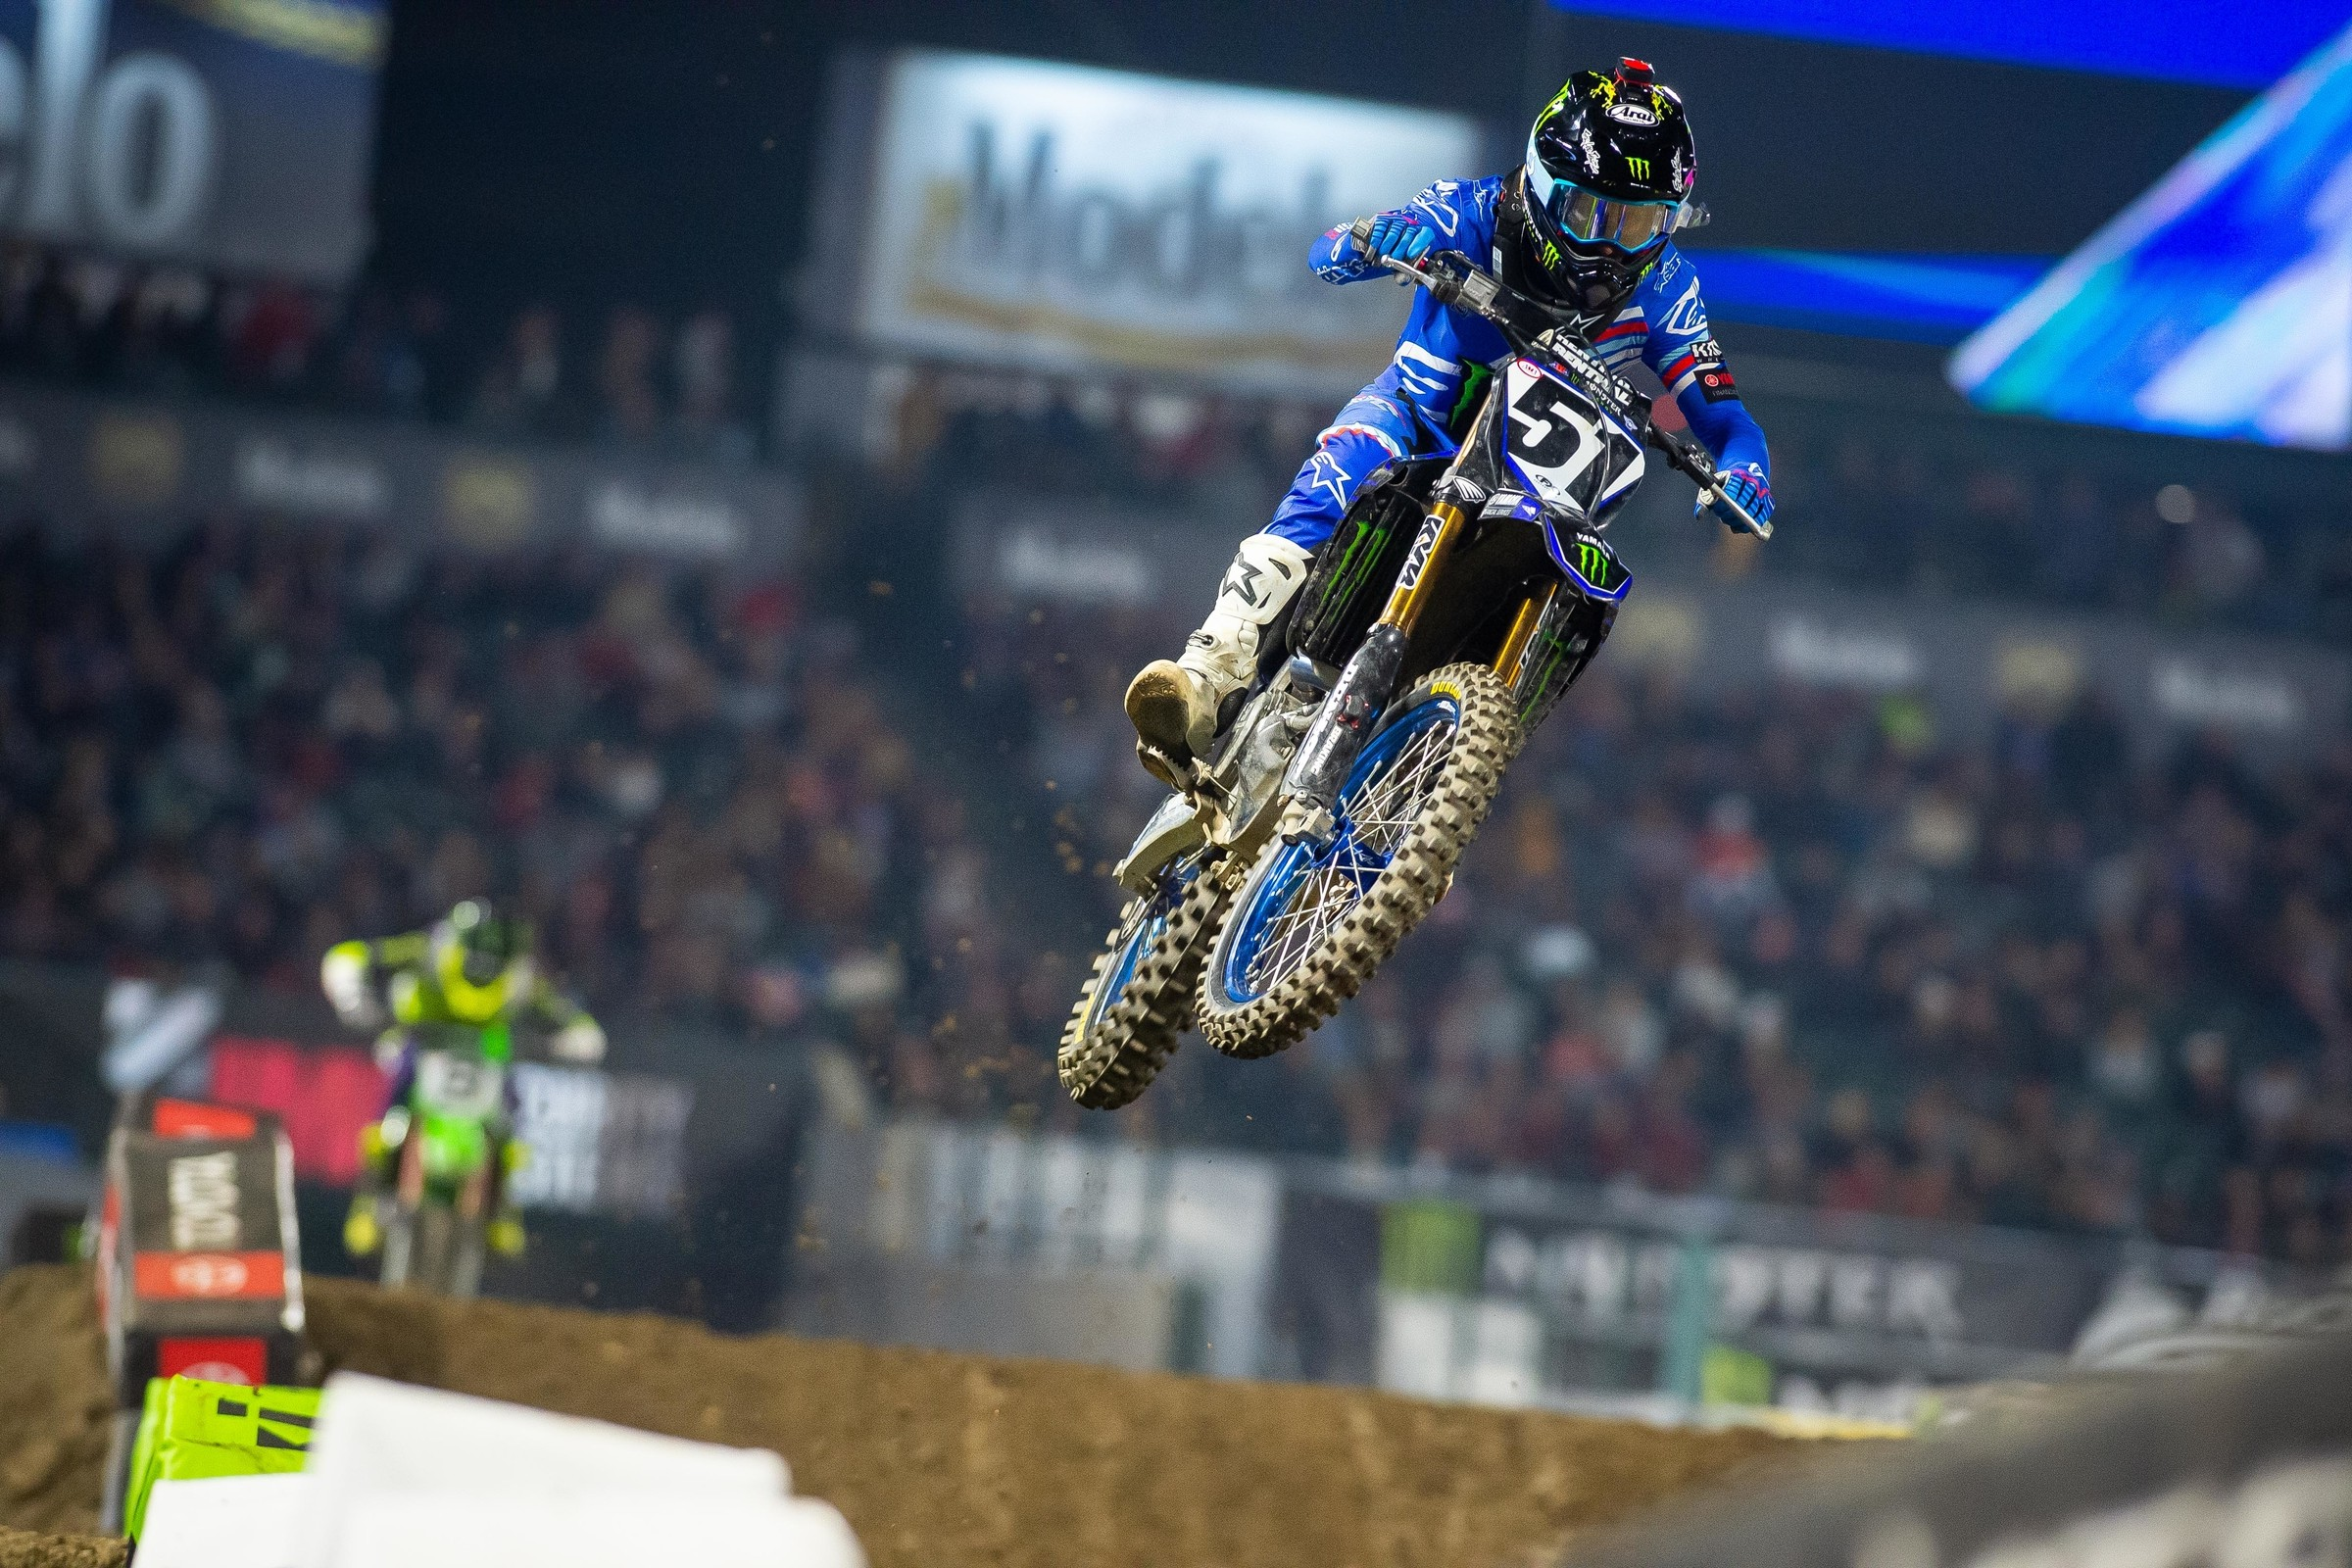 How The New Justin Barcia Won 2020 Anaheim 1 - Supercross - Racer ...